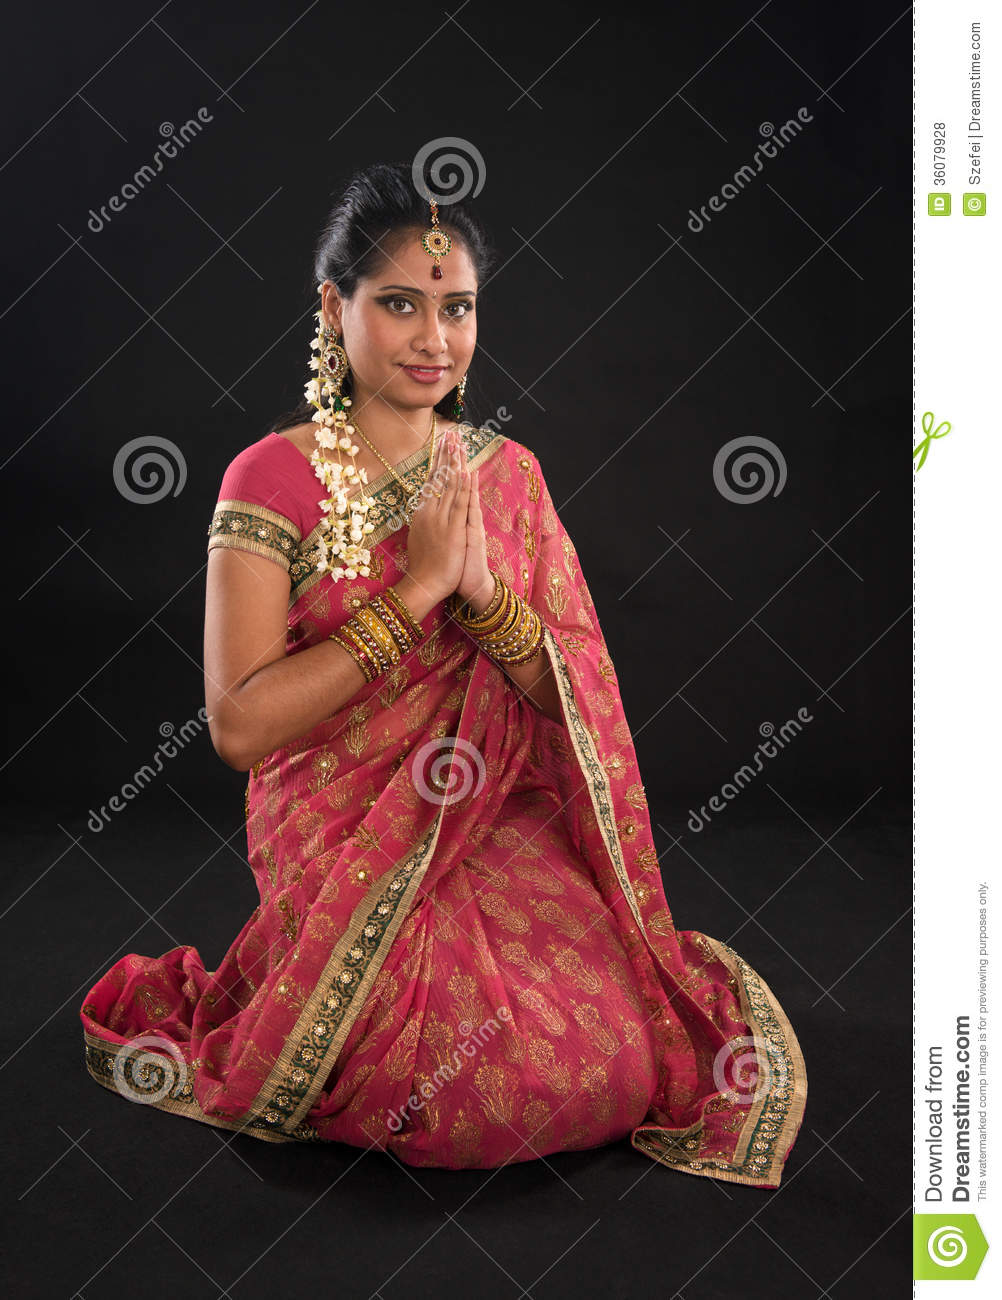 indian girl in a greeting pose royalty free stock photos